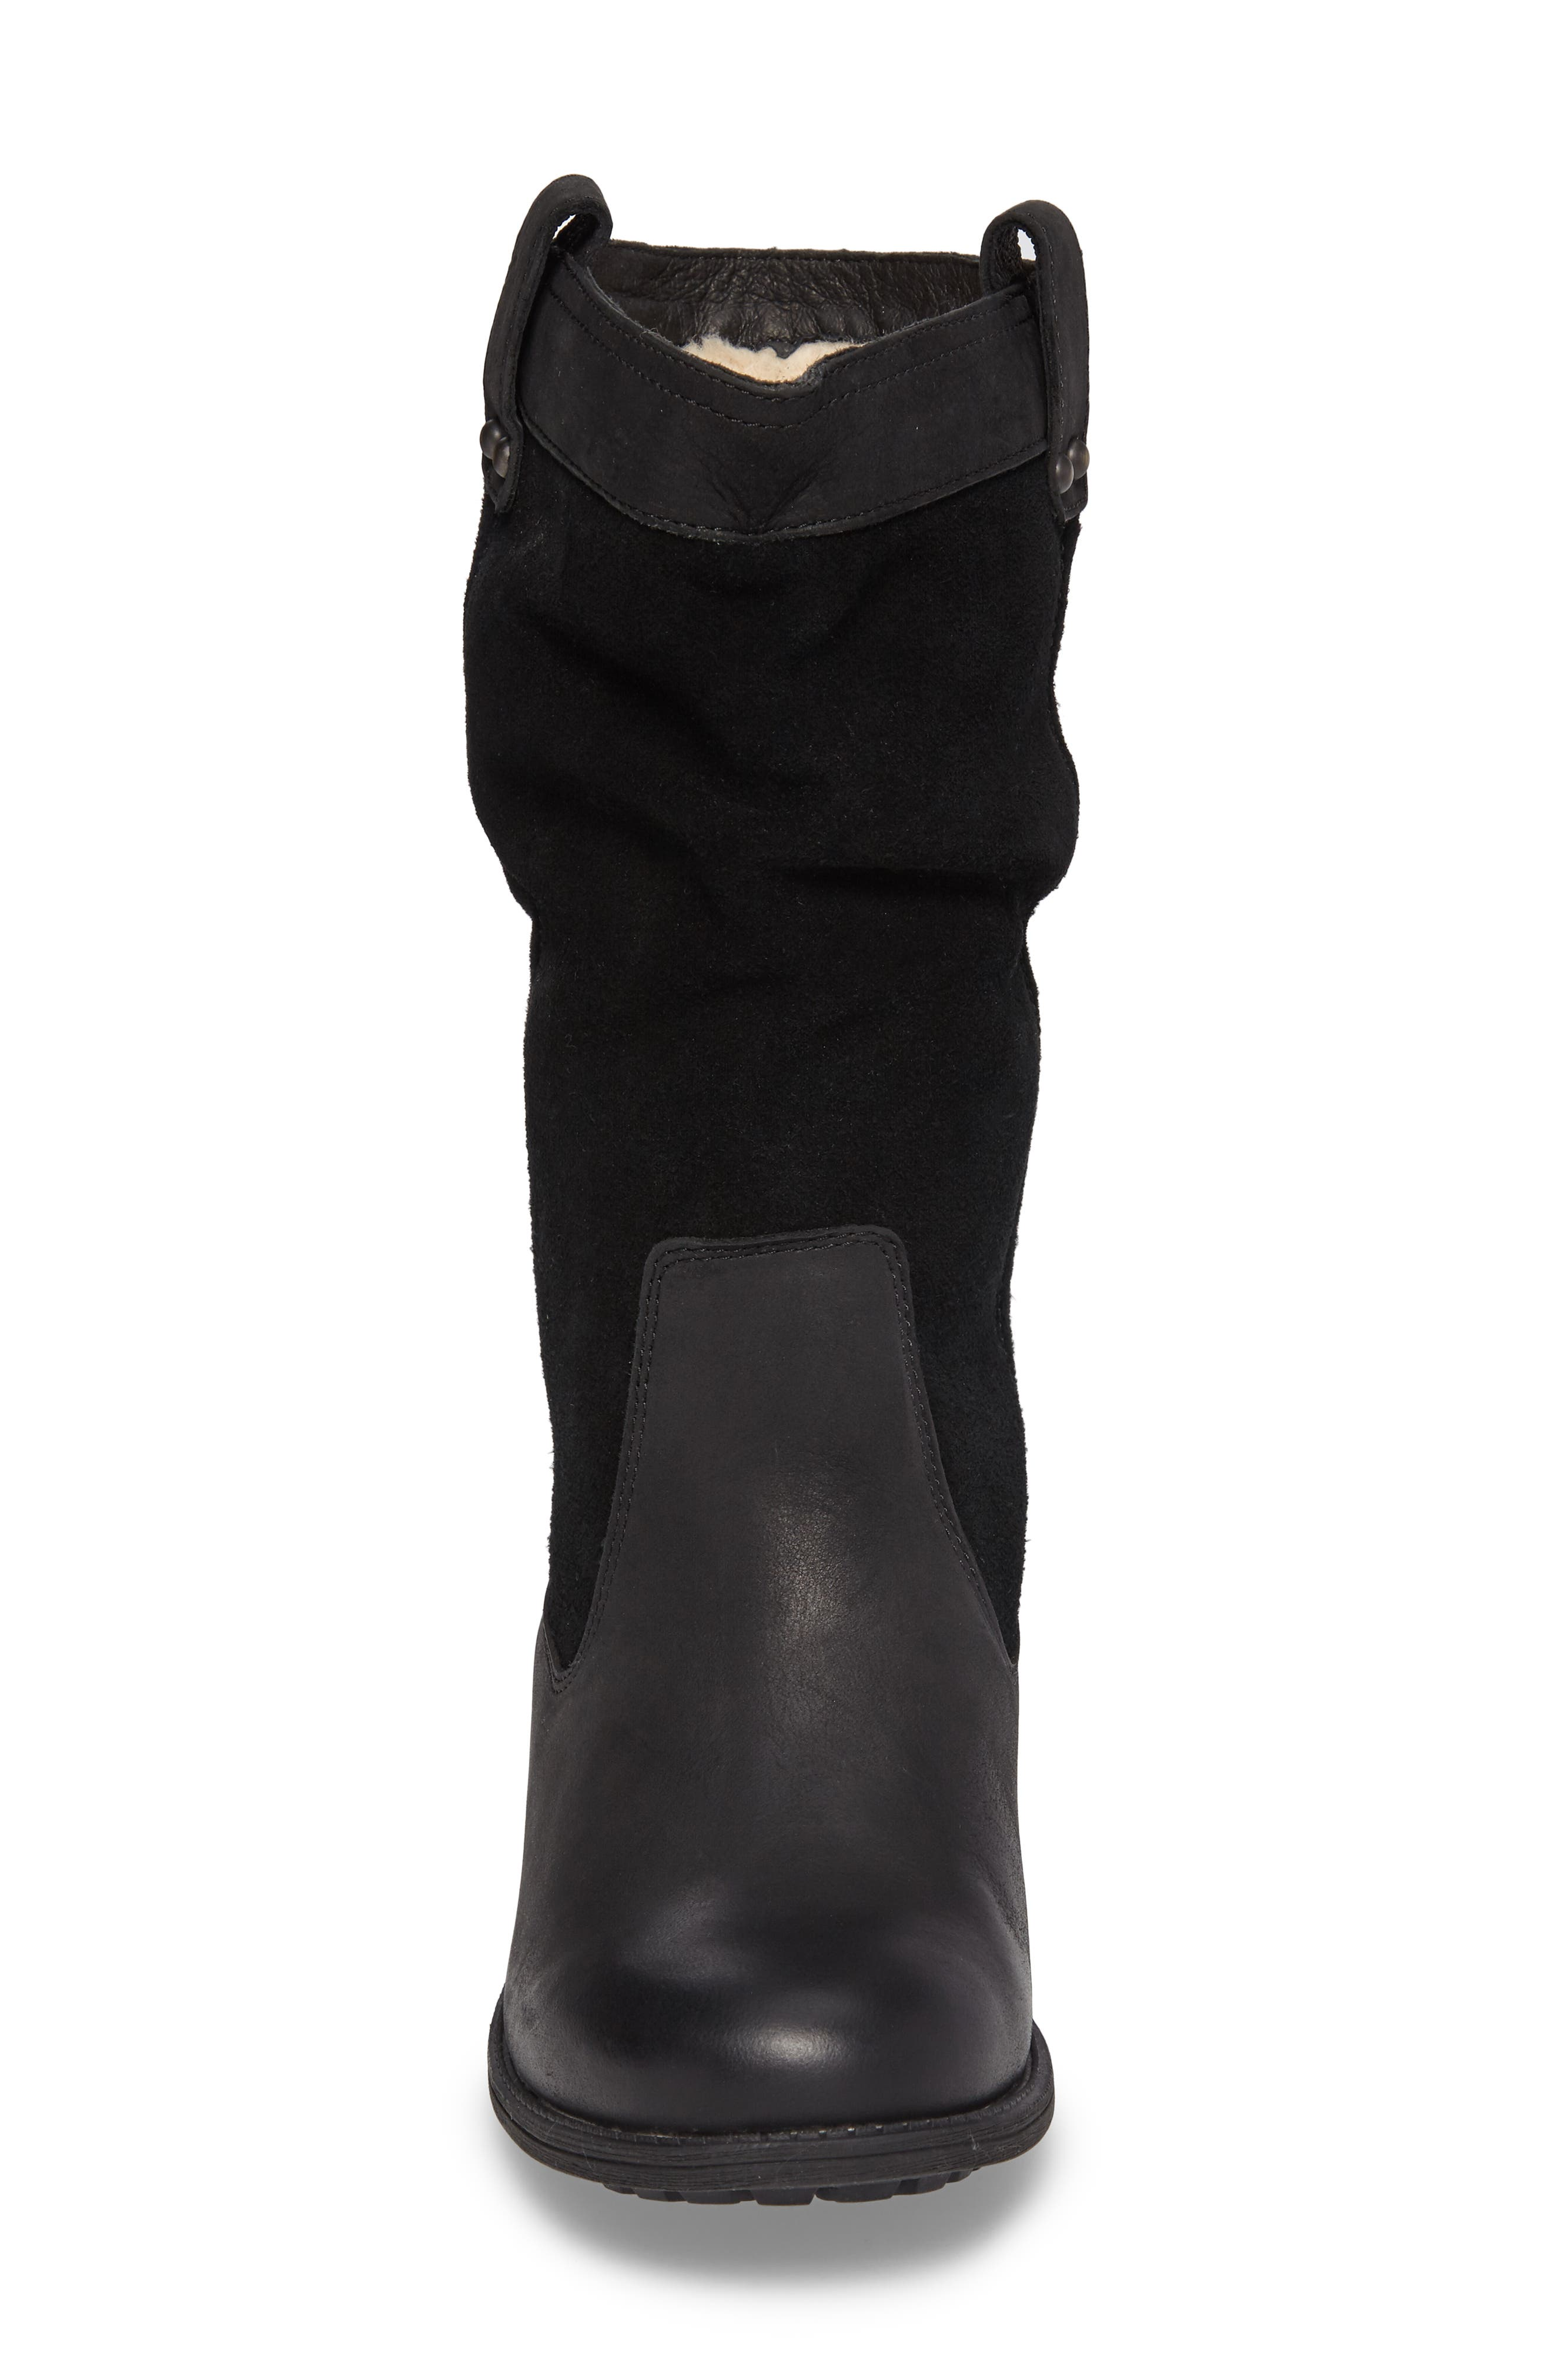 Bruckner Water Resistant Slouch Boot,                             Alternate thumbnail 4, color,                             Black Leather